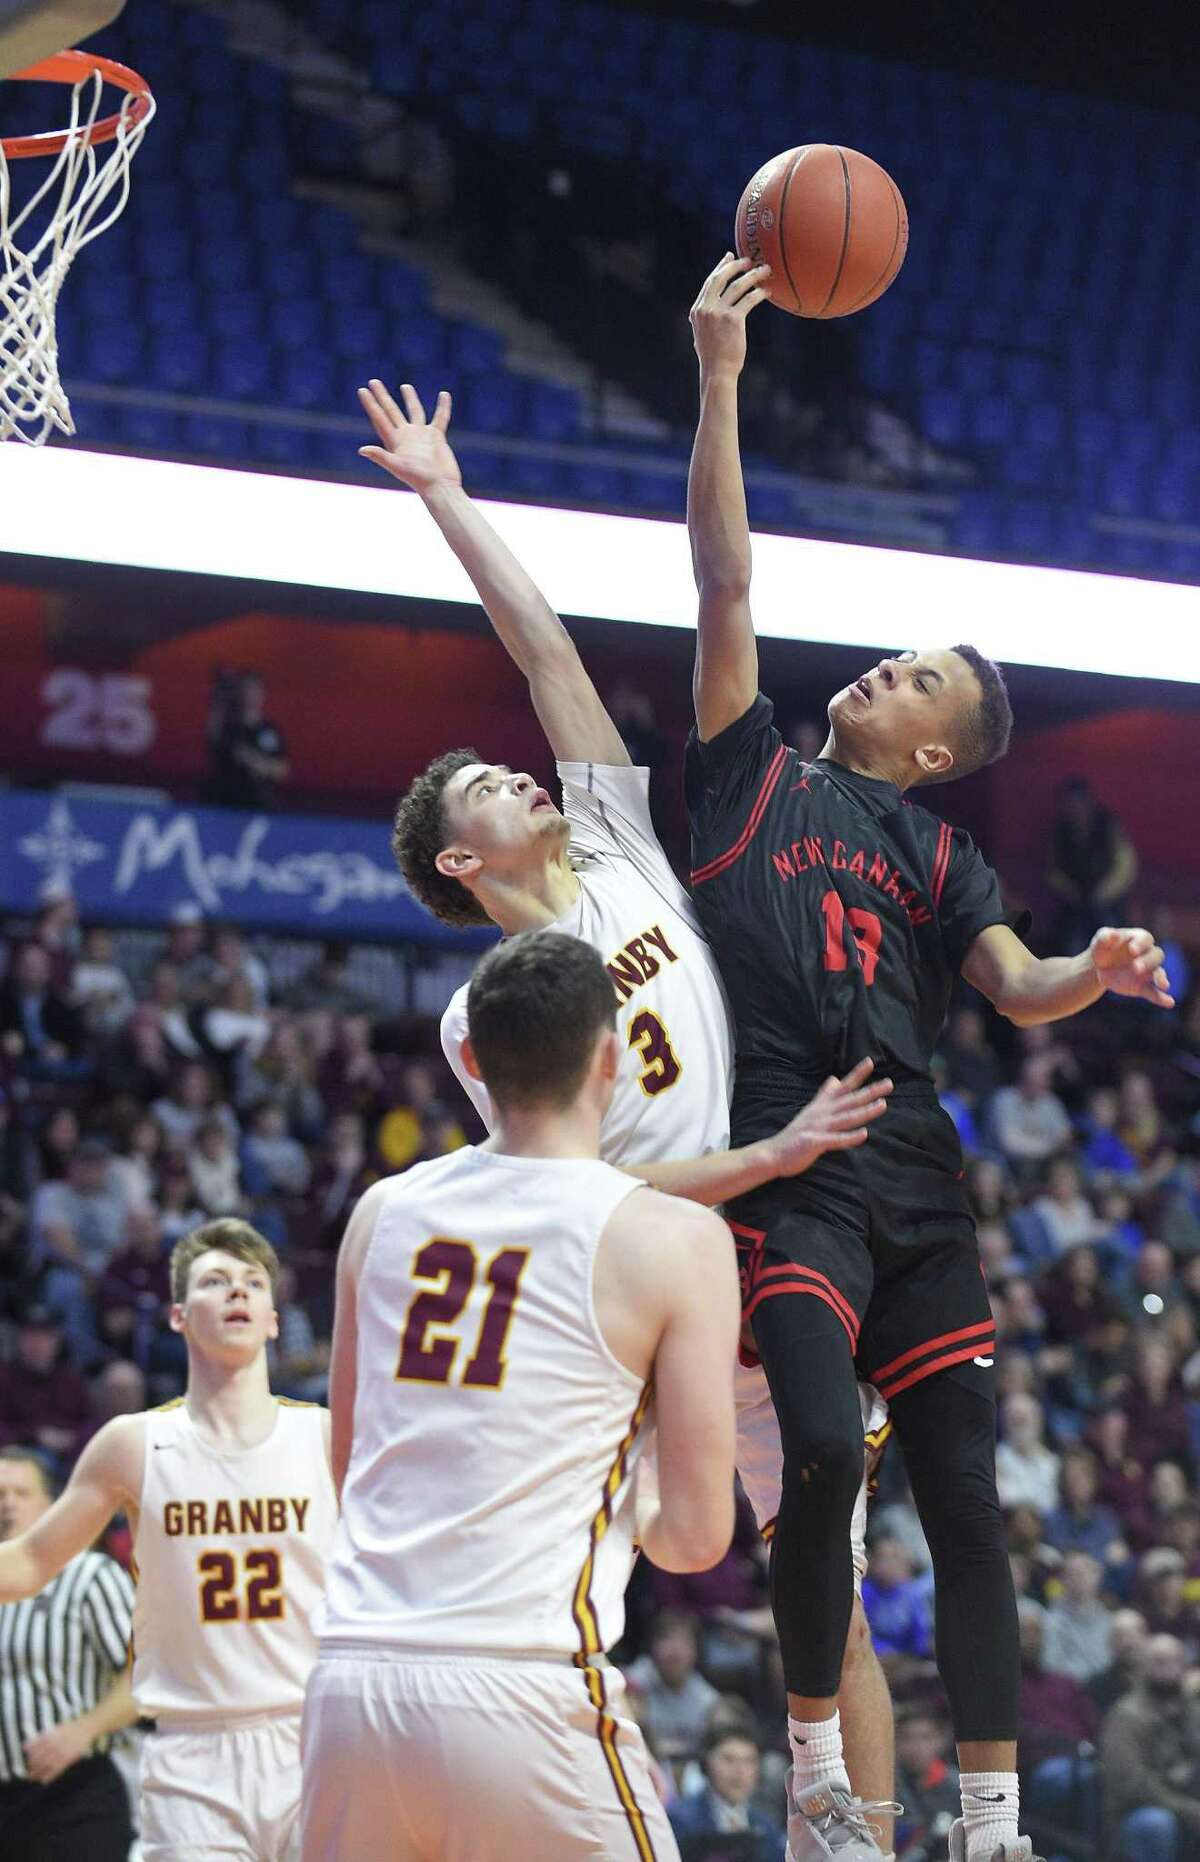 New Canaan's Luke Rwambuya (13) finger rolls a shot against Gramby's Elliyas Delaire (3) in the second half of the CIAC Division IV finals at Mohegan Sun Arena in Uncasville on Saturday. New Canaan defeated Gramby 55-39.